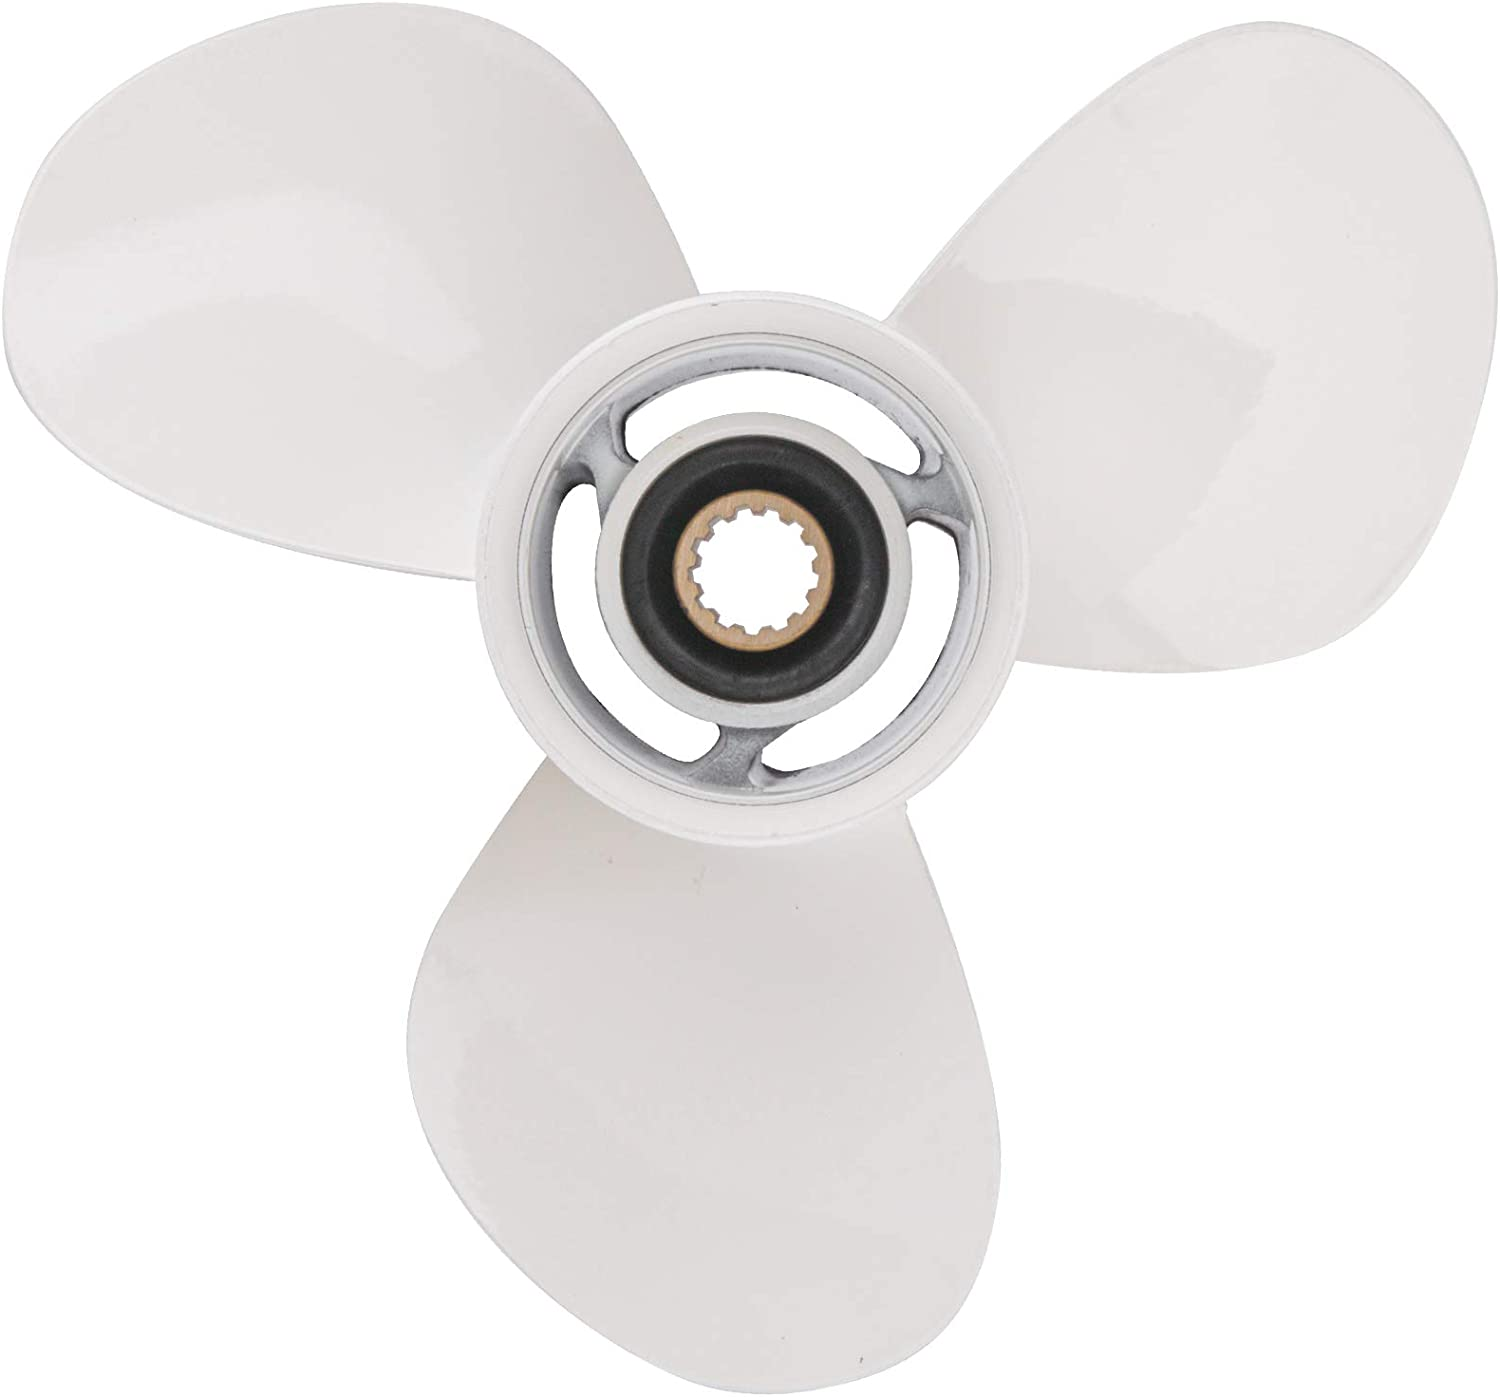 Bob's Marine 11 1/8X13-G OEM Outboard Propeller for Yamaha 40HP 50HP 55HP,OEM Parts No.69W-45945-00-00,11.125x13,13 Spline Tooth